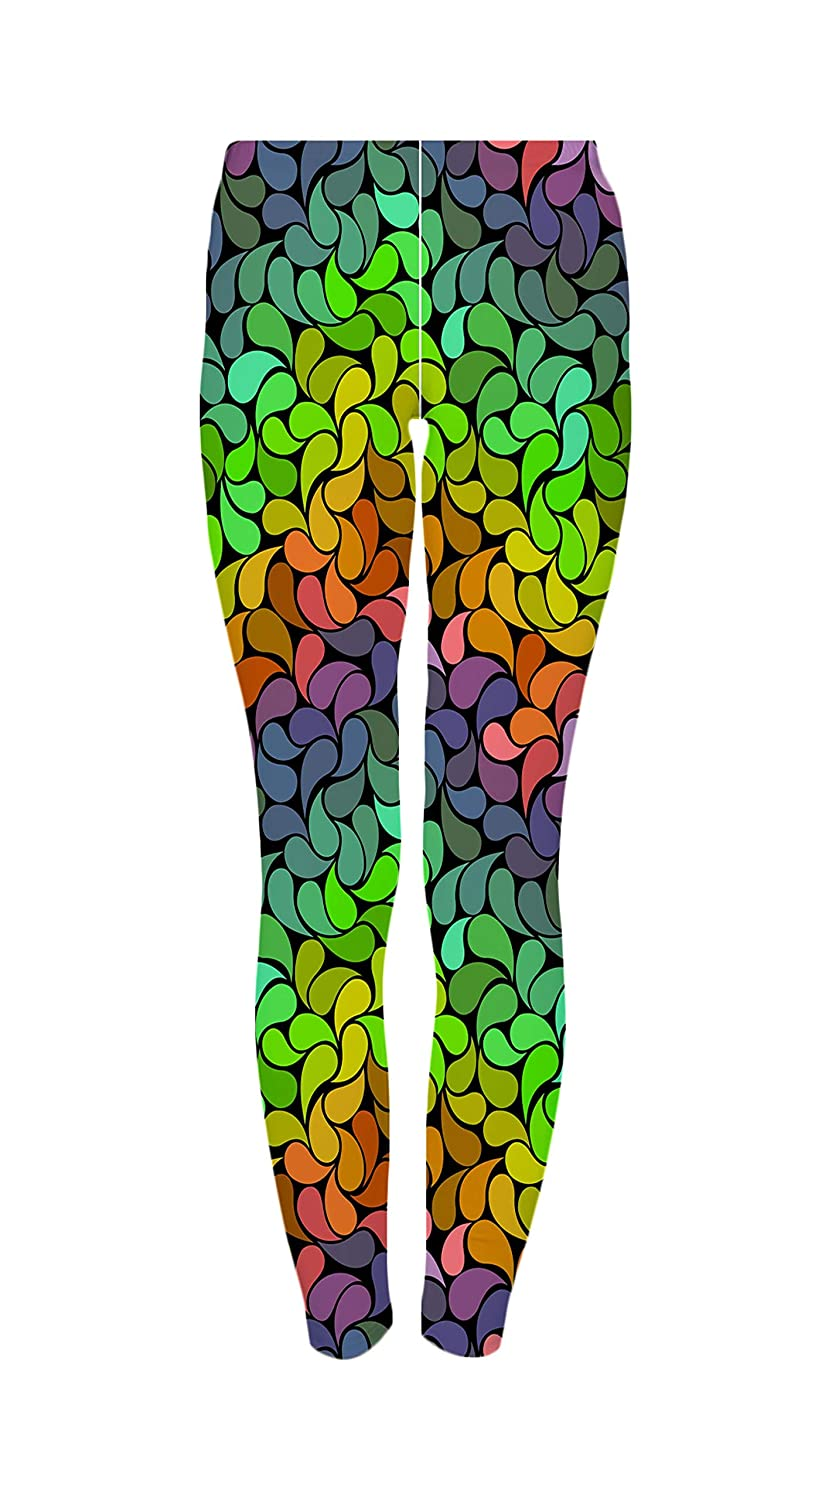 719ef5421e Amazon.com: Bright Rainbow Petals Women's Ultra Soft Popular Printed  Fashion Leggings Tight Pants: Clothing